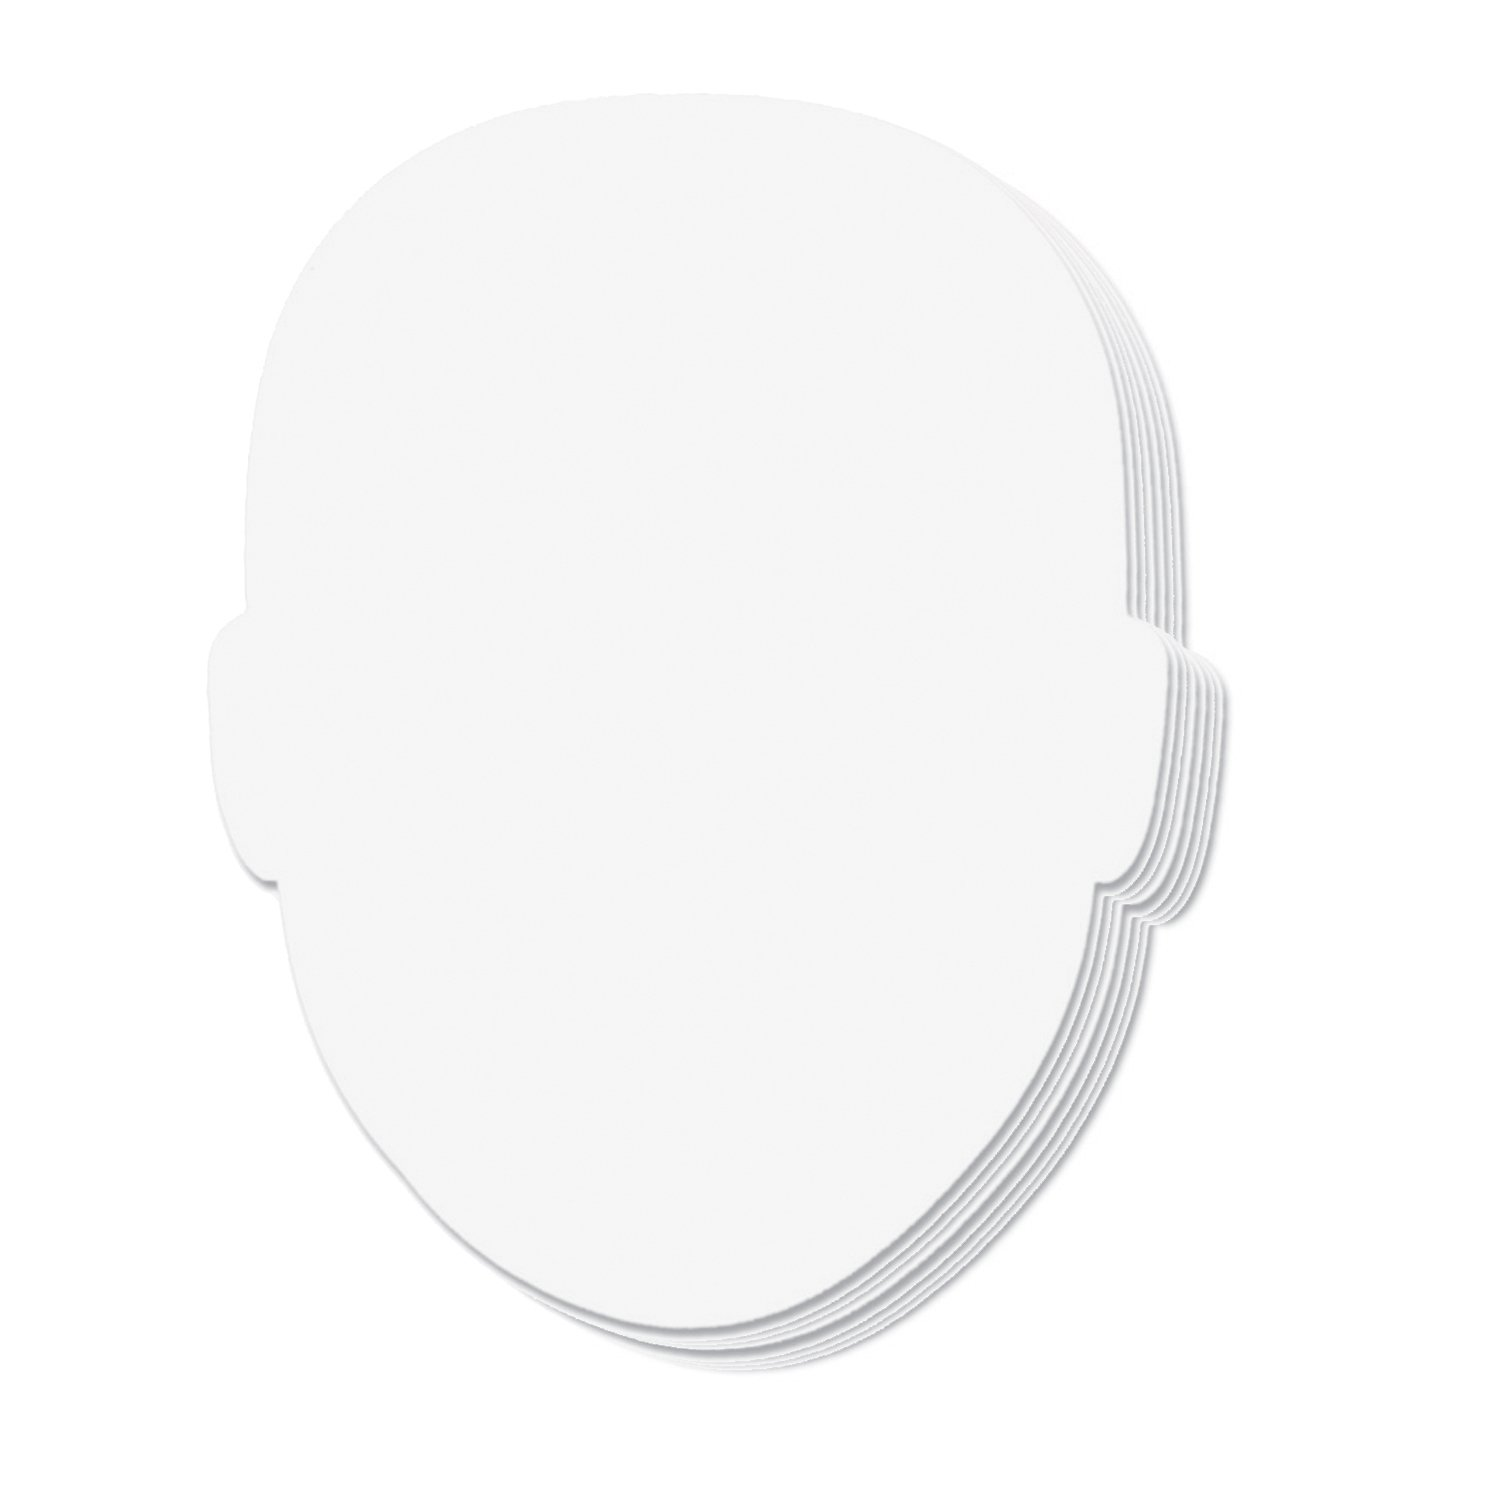 Pacon Face Whiteboard (4 Piece) by Pacon (Image #1)